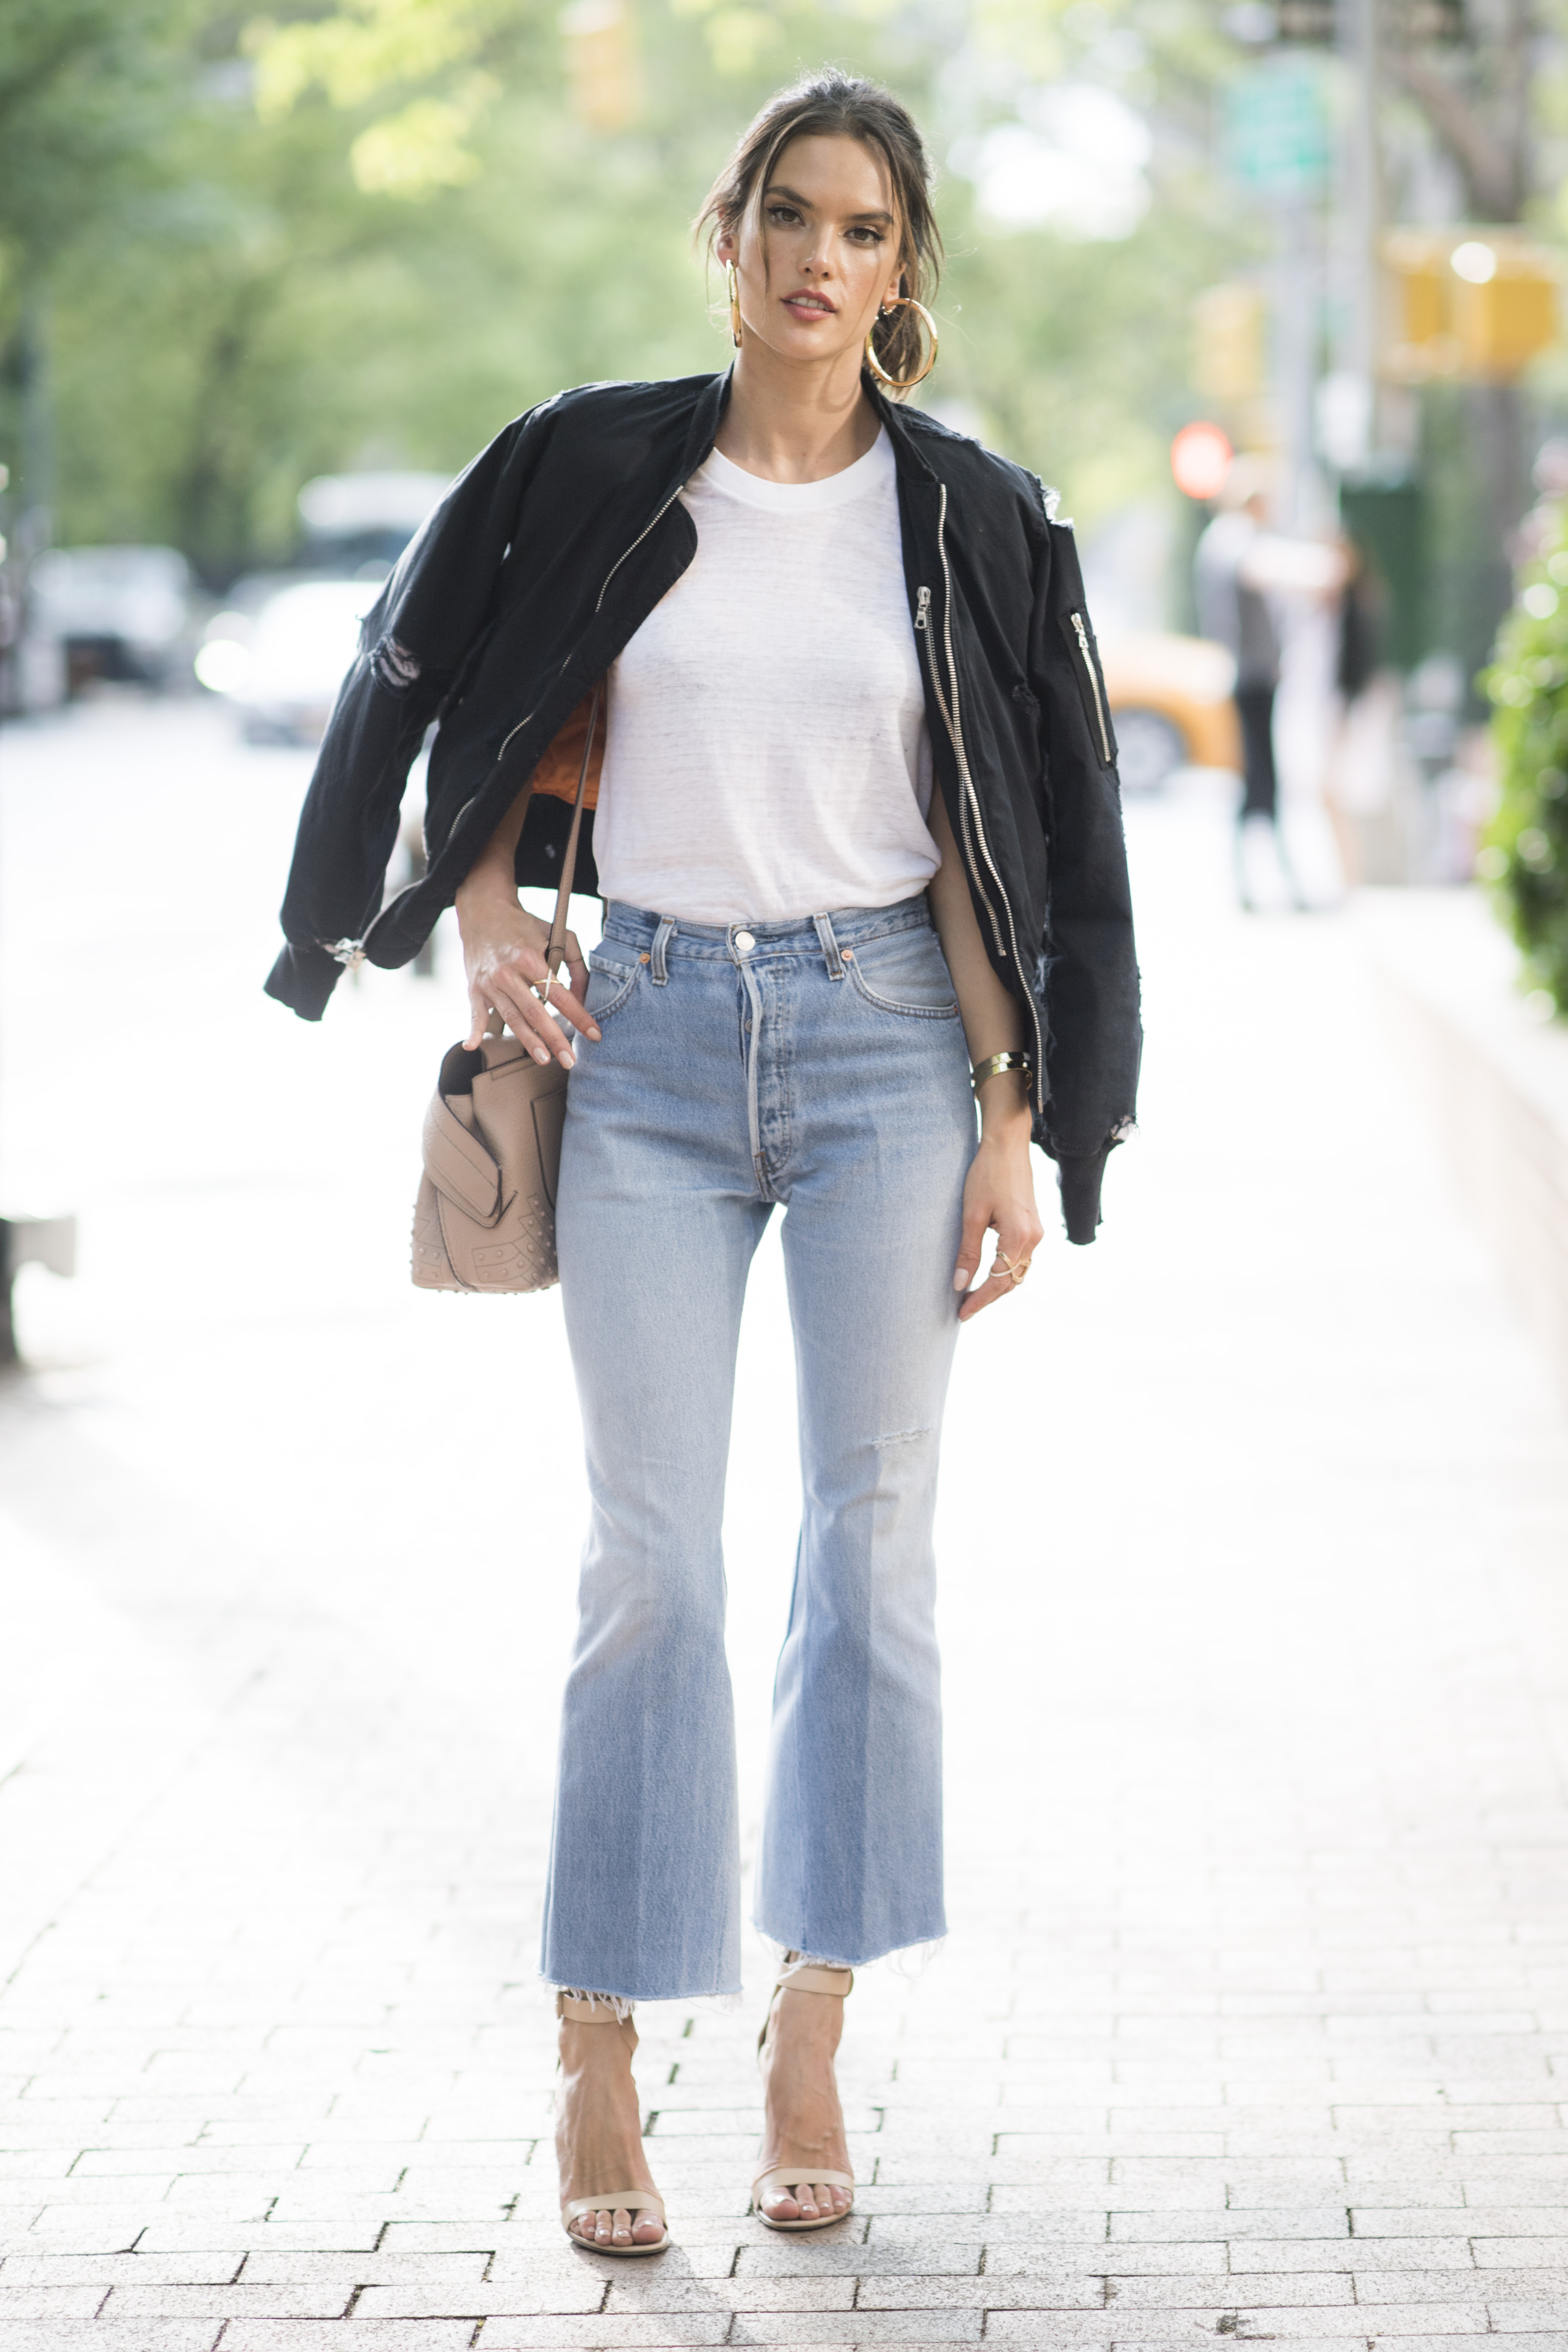 What Is The Fashionable Jean Cut For